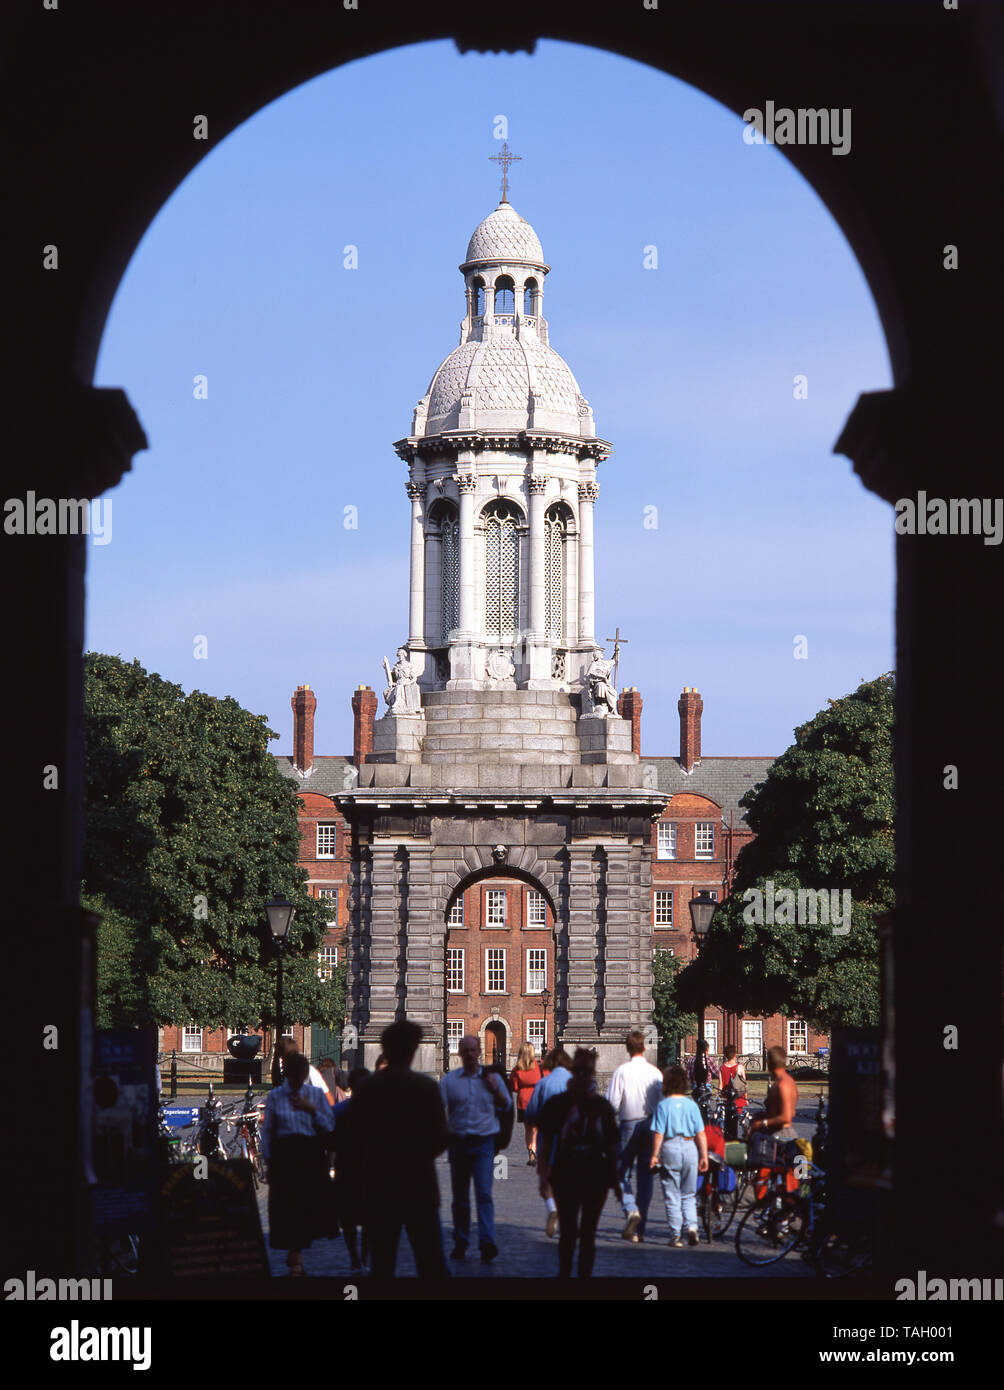 The Campanile and Parliament Square, Trinity College Dublin, College Green, Dublin, Leinster Province, Republic of Ireland Stock Photo